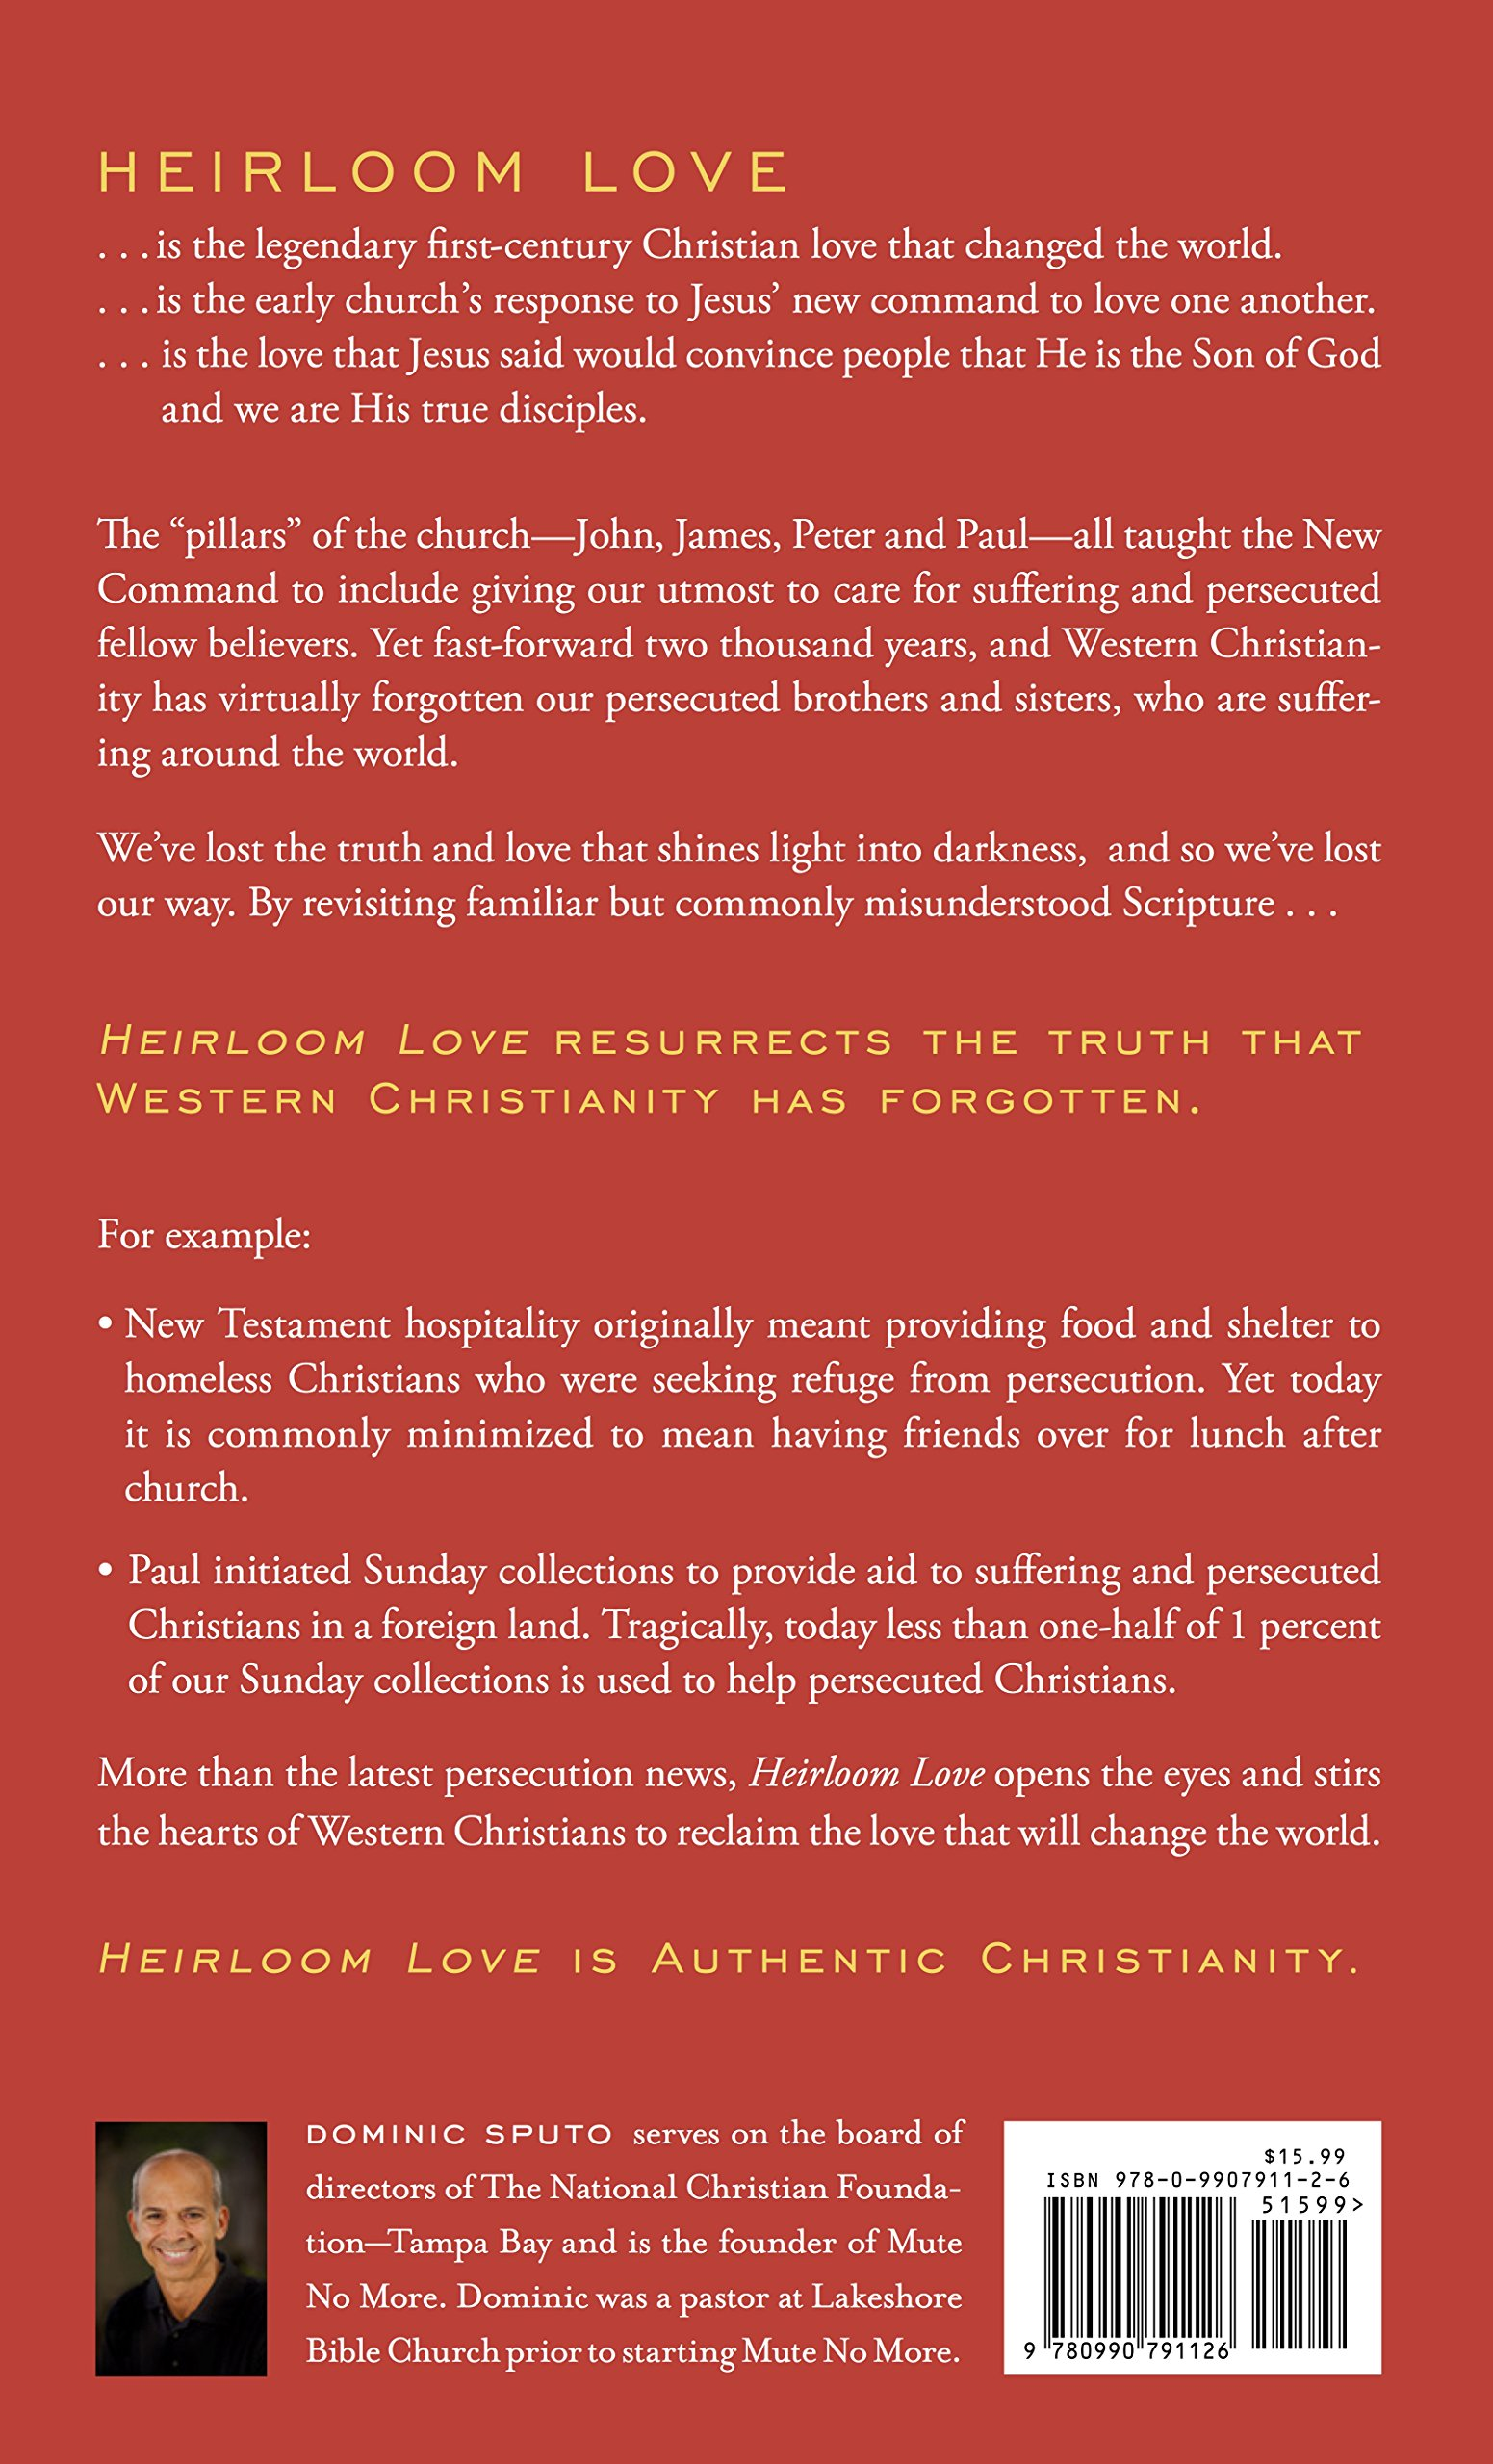 Heirloom Love: Authentic Christianity for this Age of